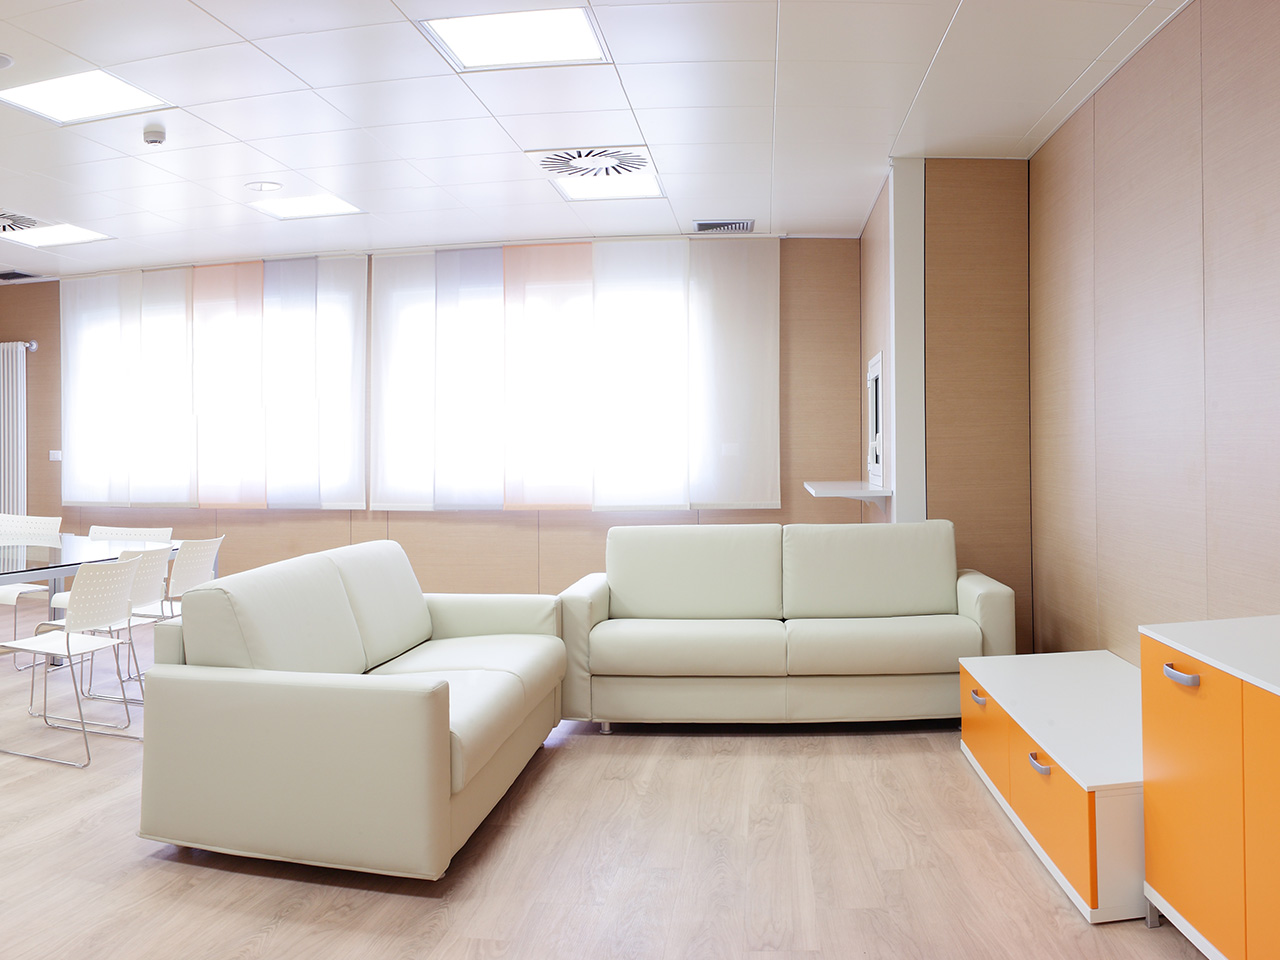 Development of OR, ICU & ER WARDS hospital areas - Conegliano Italy 05